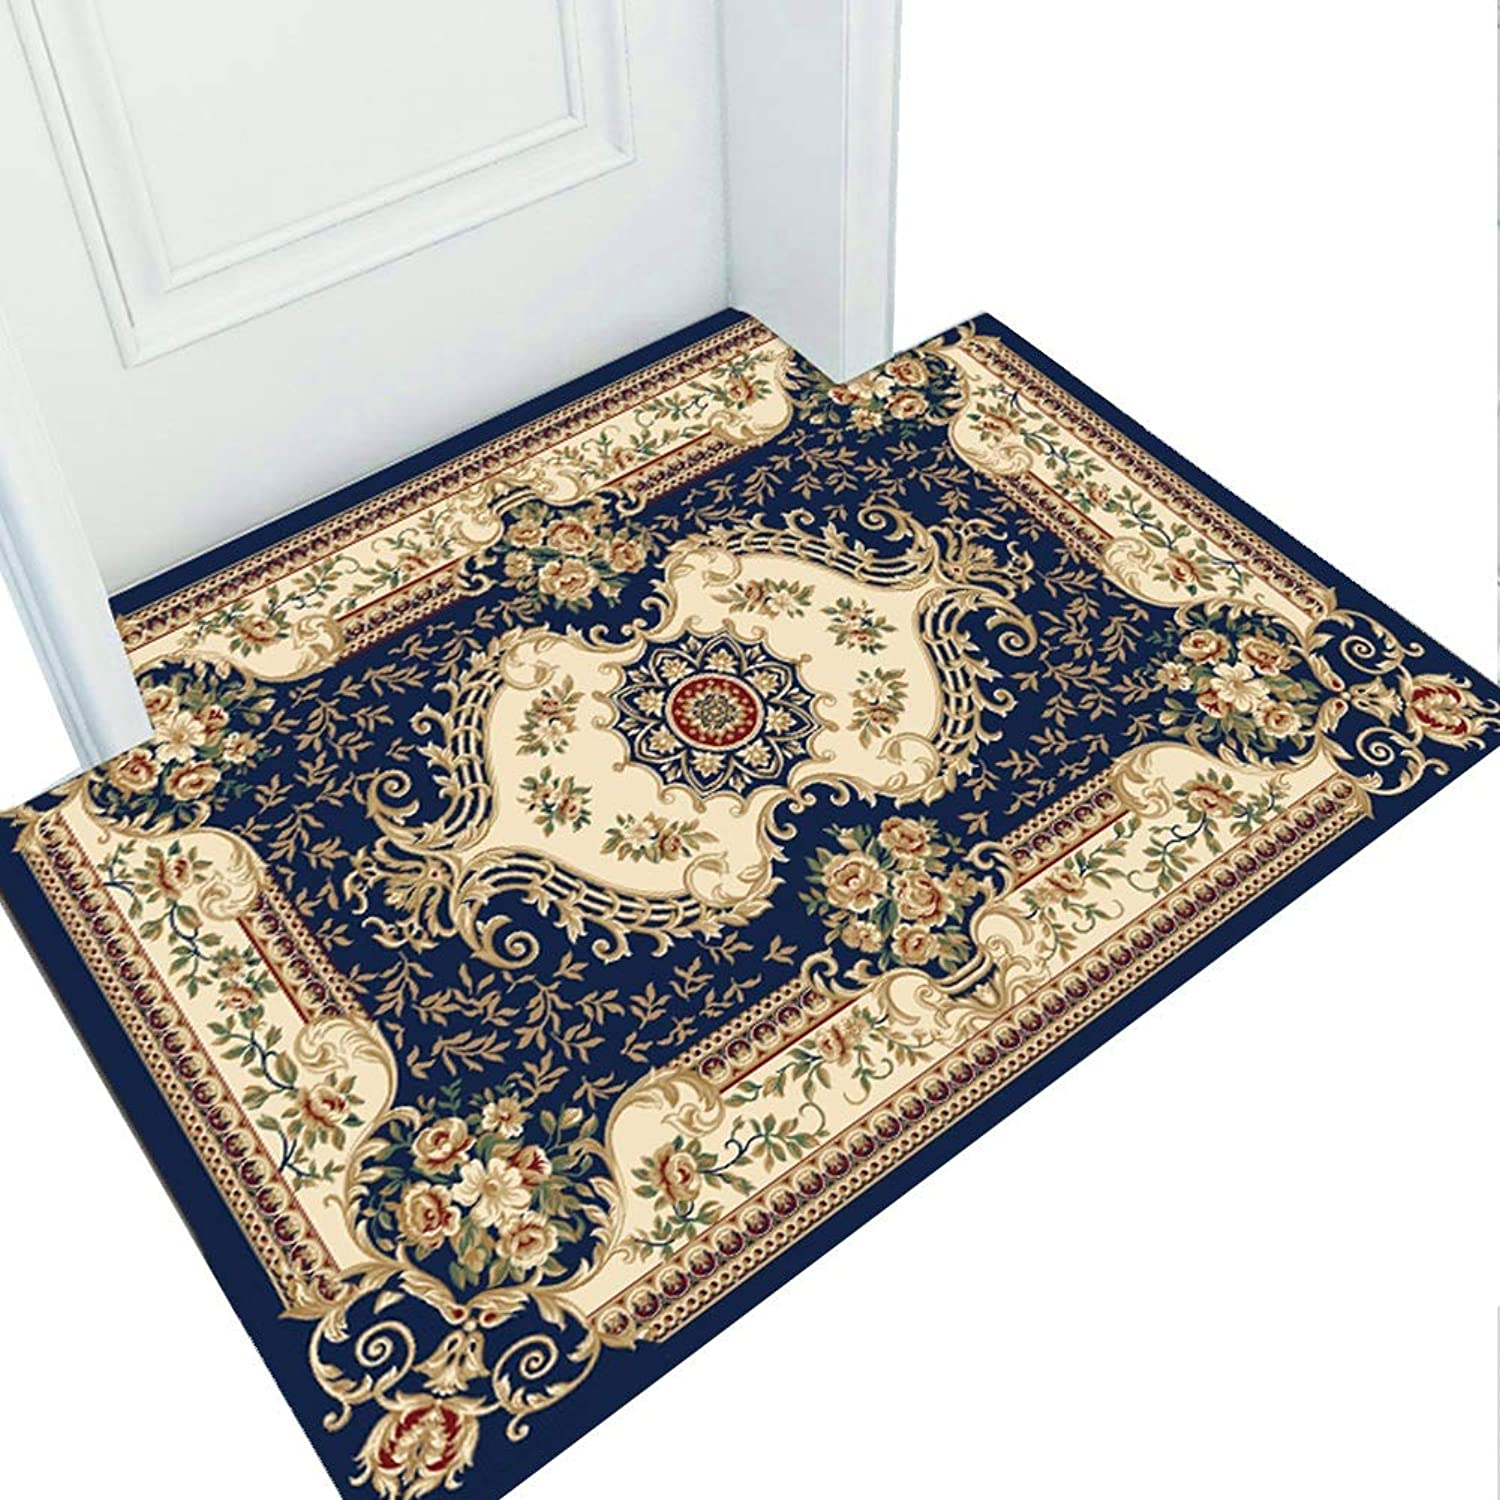 JIAJUAN Front Doormat Non-Slip Dirt Trapper Welcome Mat Indoor Outdoor Rug for Home, Nordic Style (color   A, Size   80X160cm)